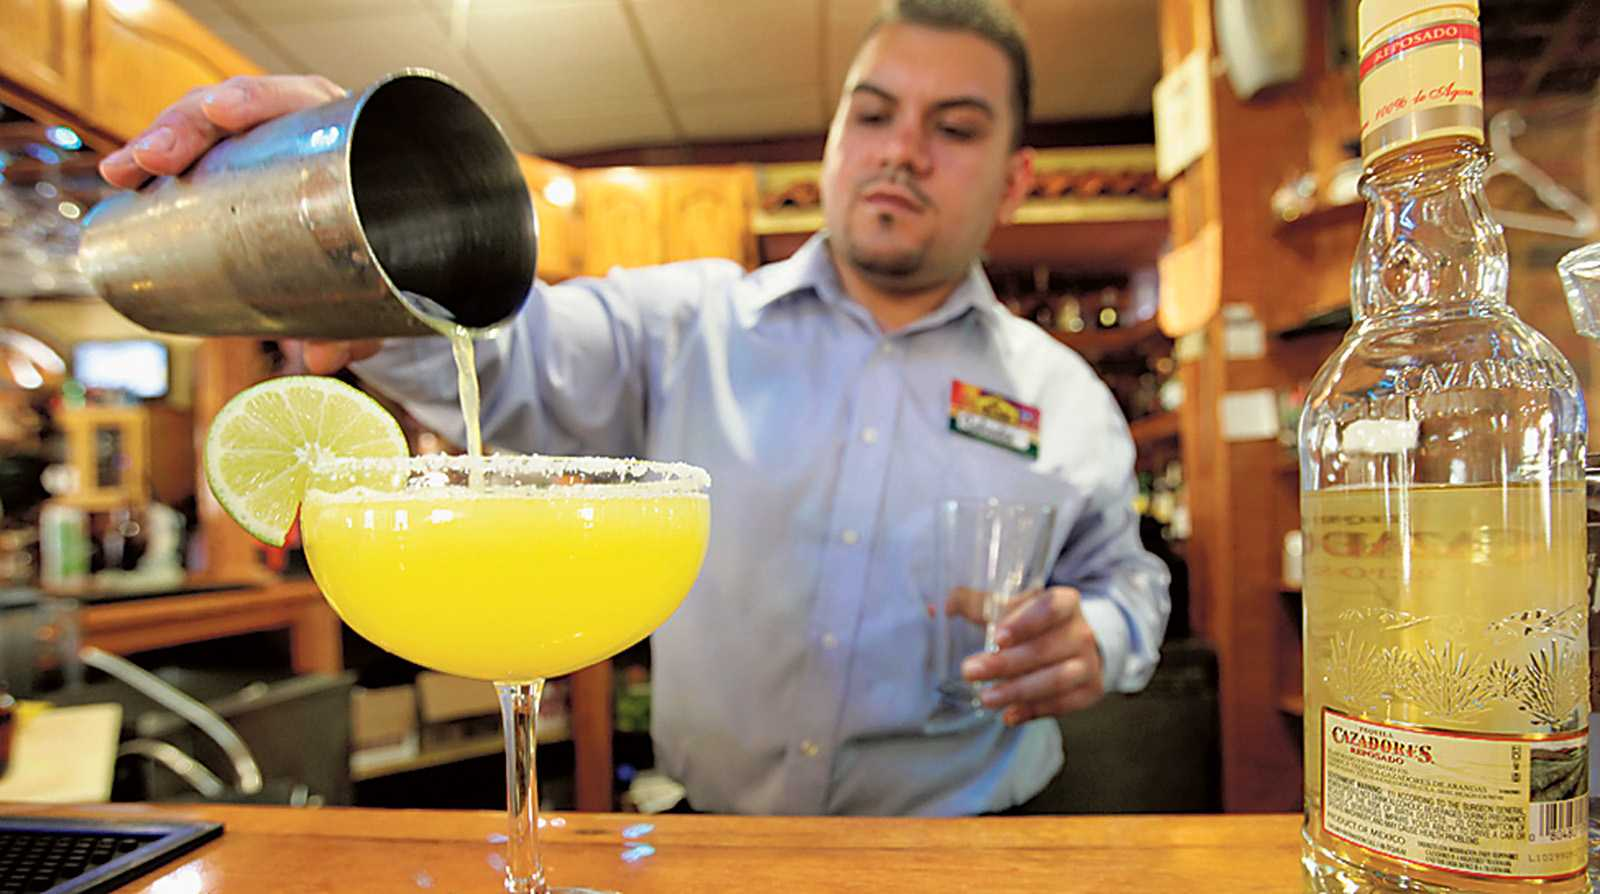 Taqueria Mi Pueblo bartender Salvador Gutierrez's premium margarita includes fresh-squeezed lime and orange juices. (Jarrad Henderson/Detroit Free Press/MCT)